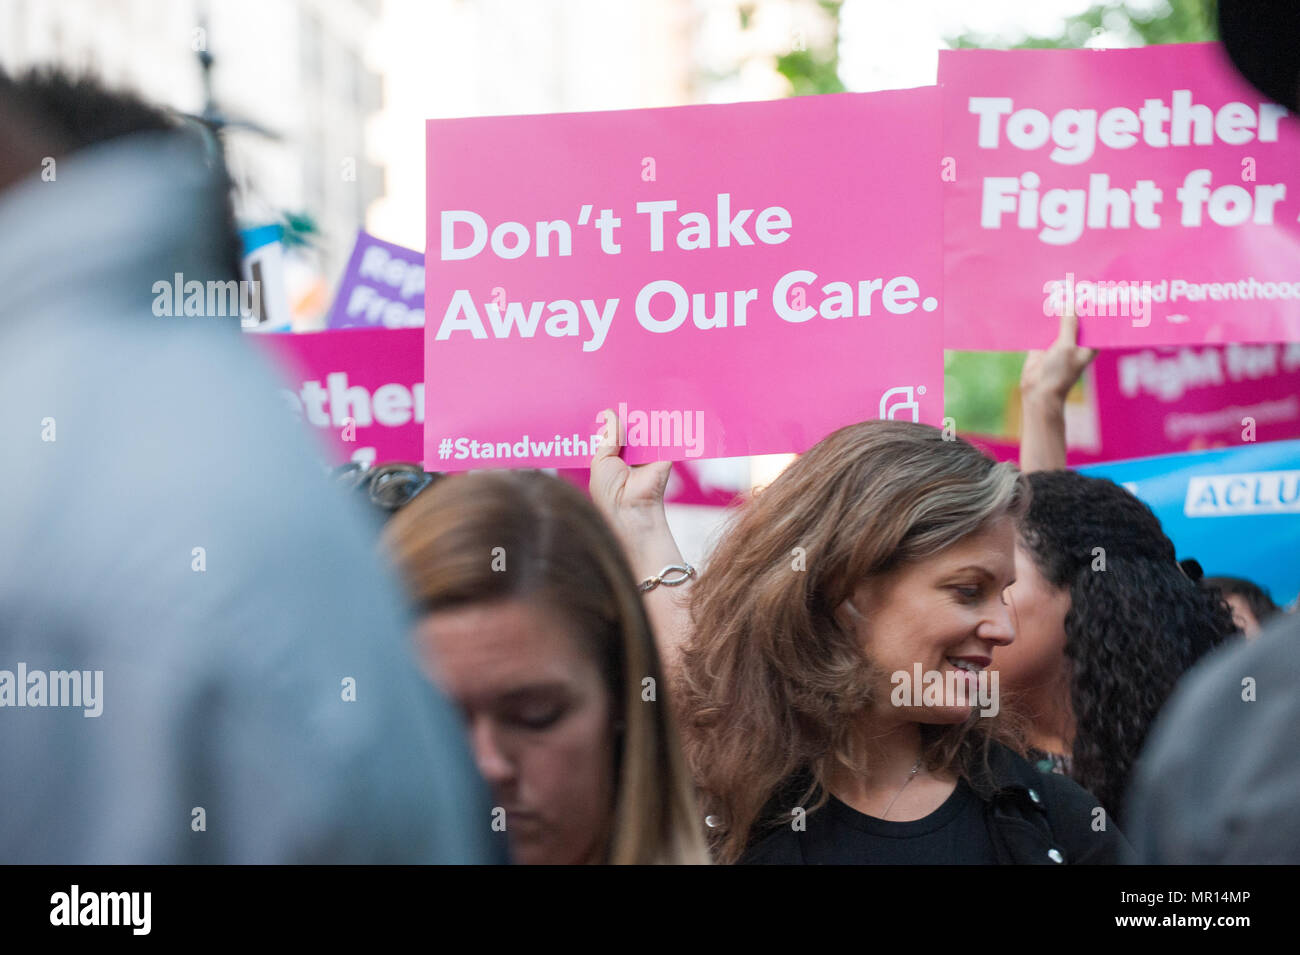 Title X (Title Ten) gag rule rally in New York City, hosted by Planned Parenthood of New York City on May 24th 2018, reacting the President Trump's attempt to ban Medicaid and federal funding to medical providers who provide full, legal medical information to patients wanting or needing abortion services. - Stock Image